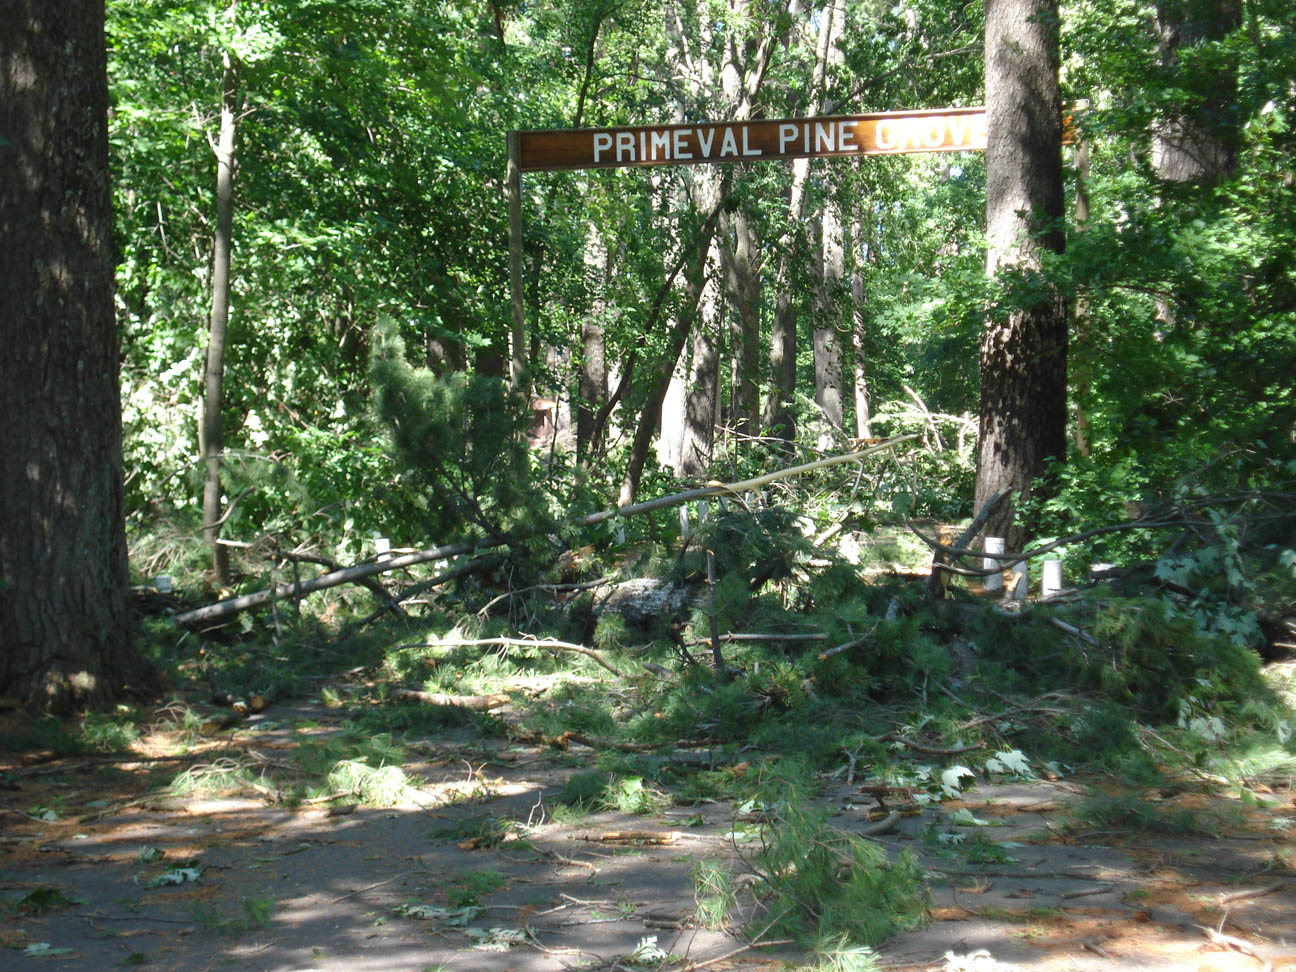 A mess of branches, Pine Grove Park, Little Falls, MN, July 12, 2008